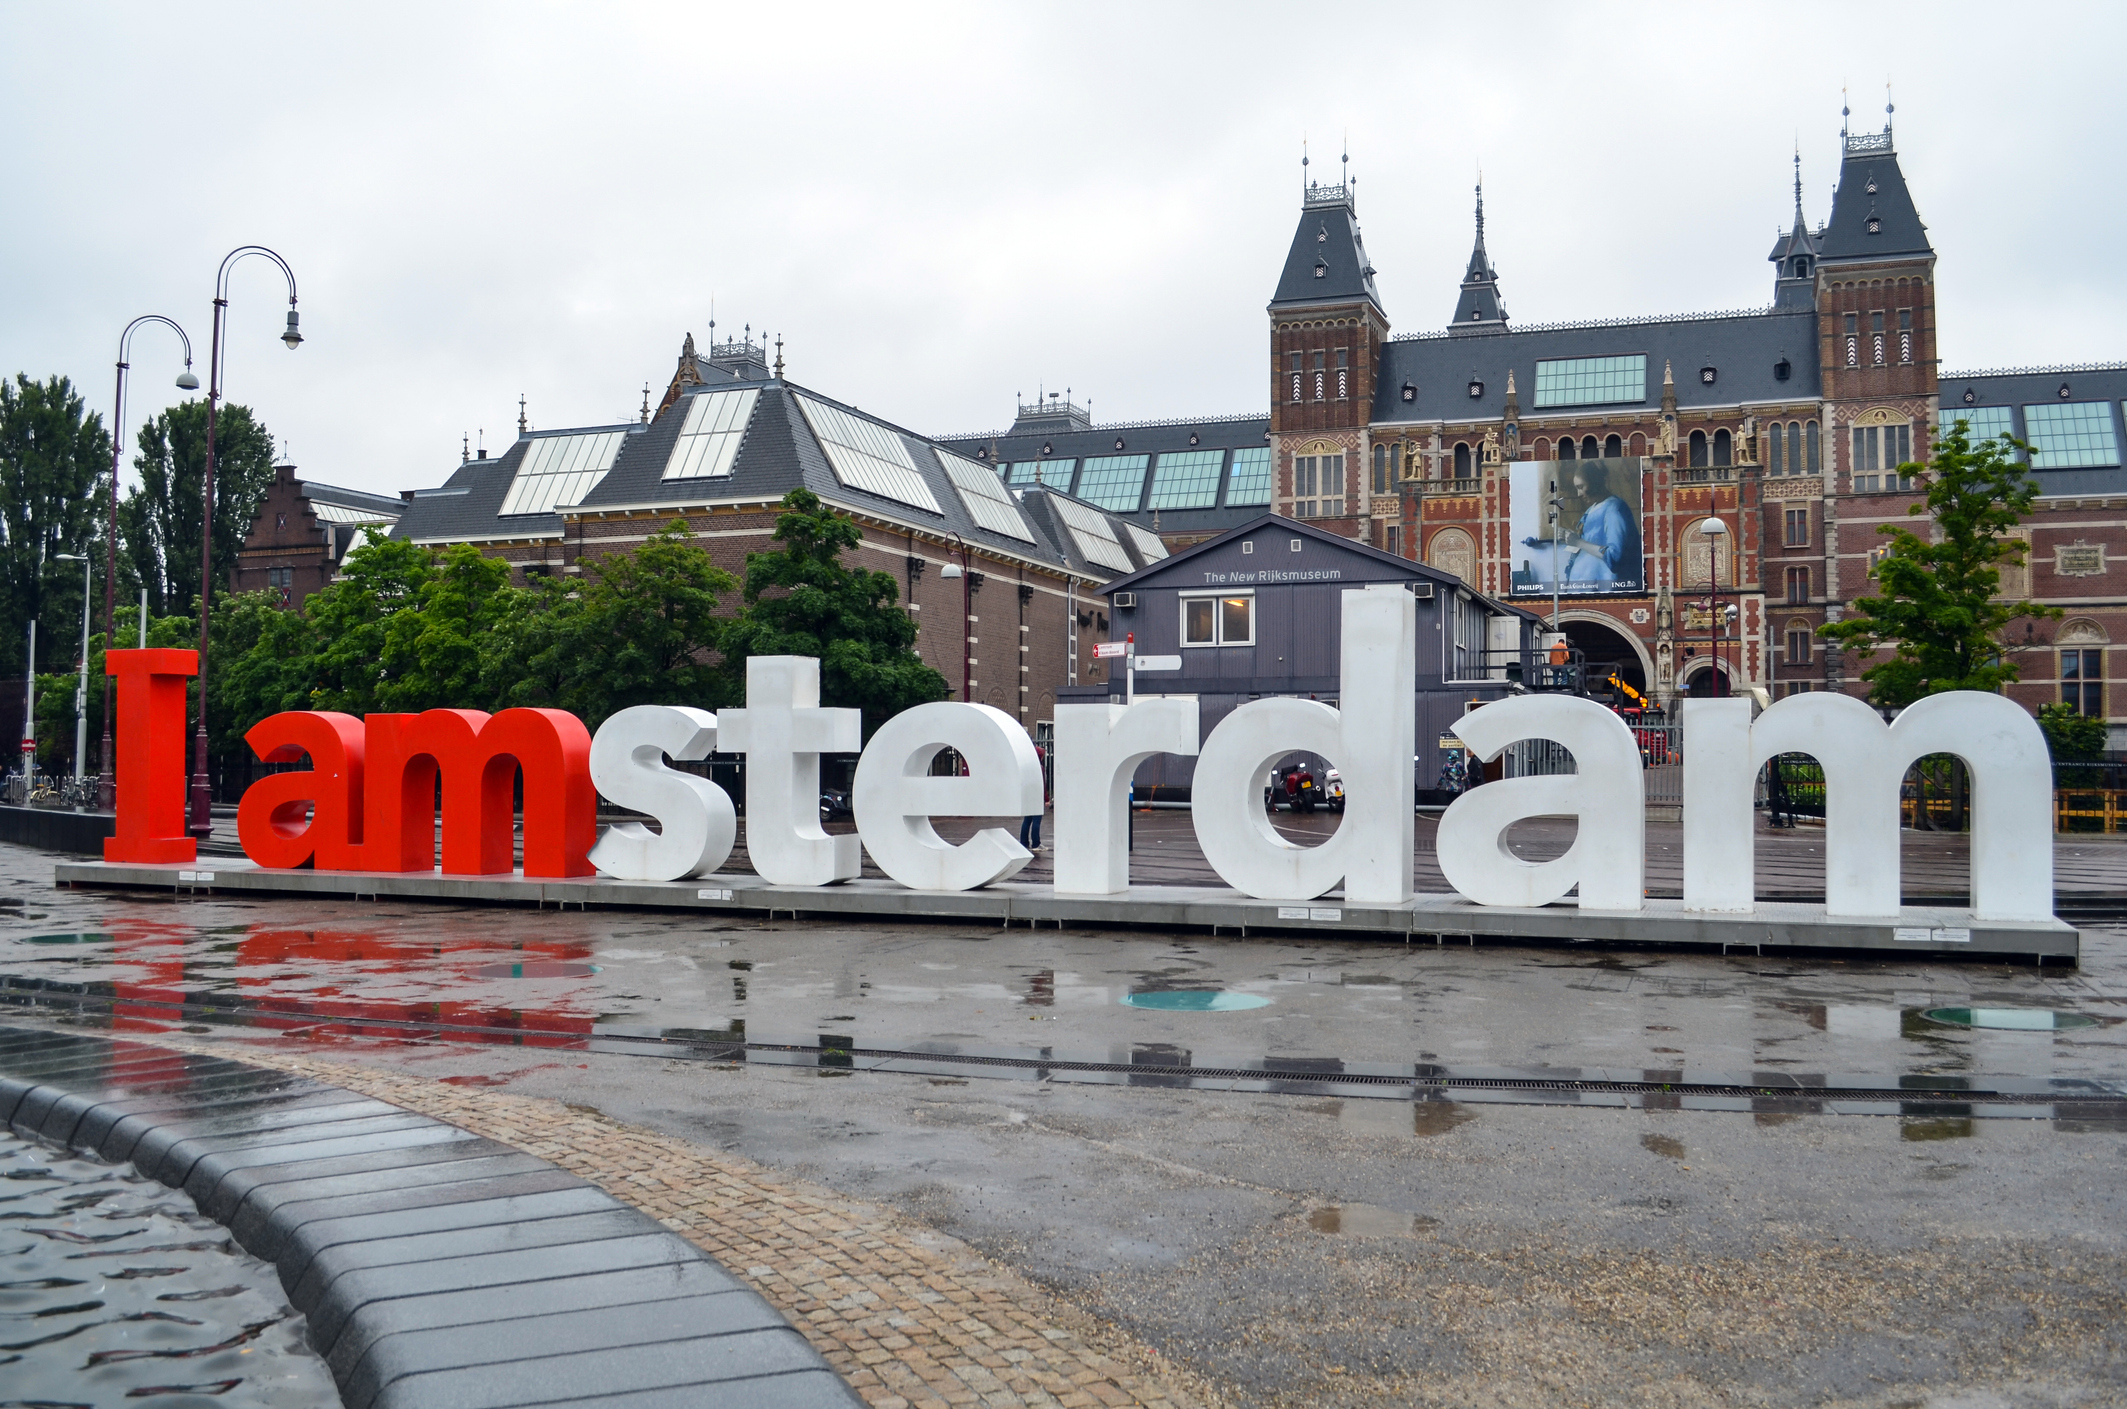 This massive Amsterdam tourist attraction is gone for good